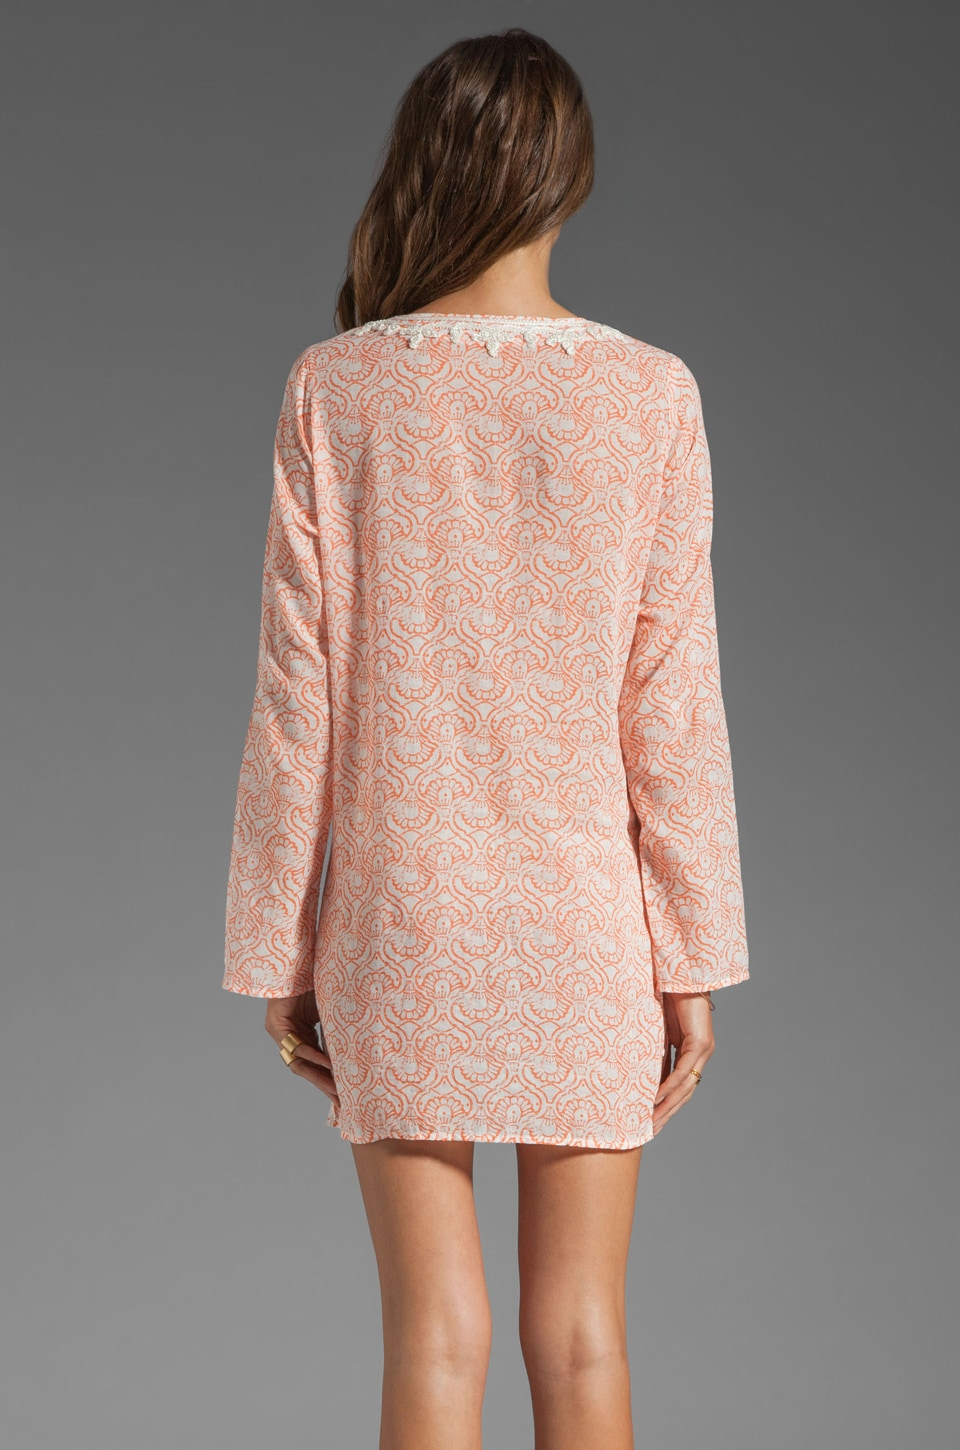 Soft Joie Carney Print Dress in Neon Coral